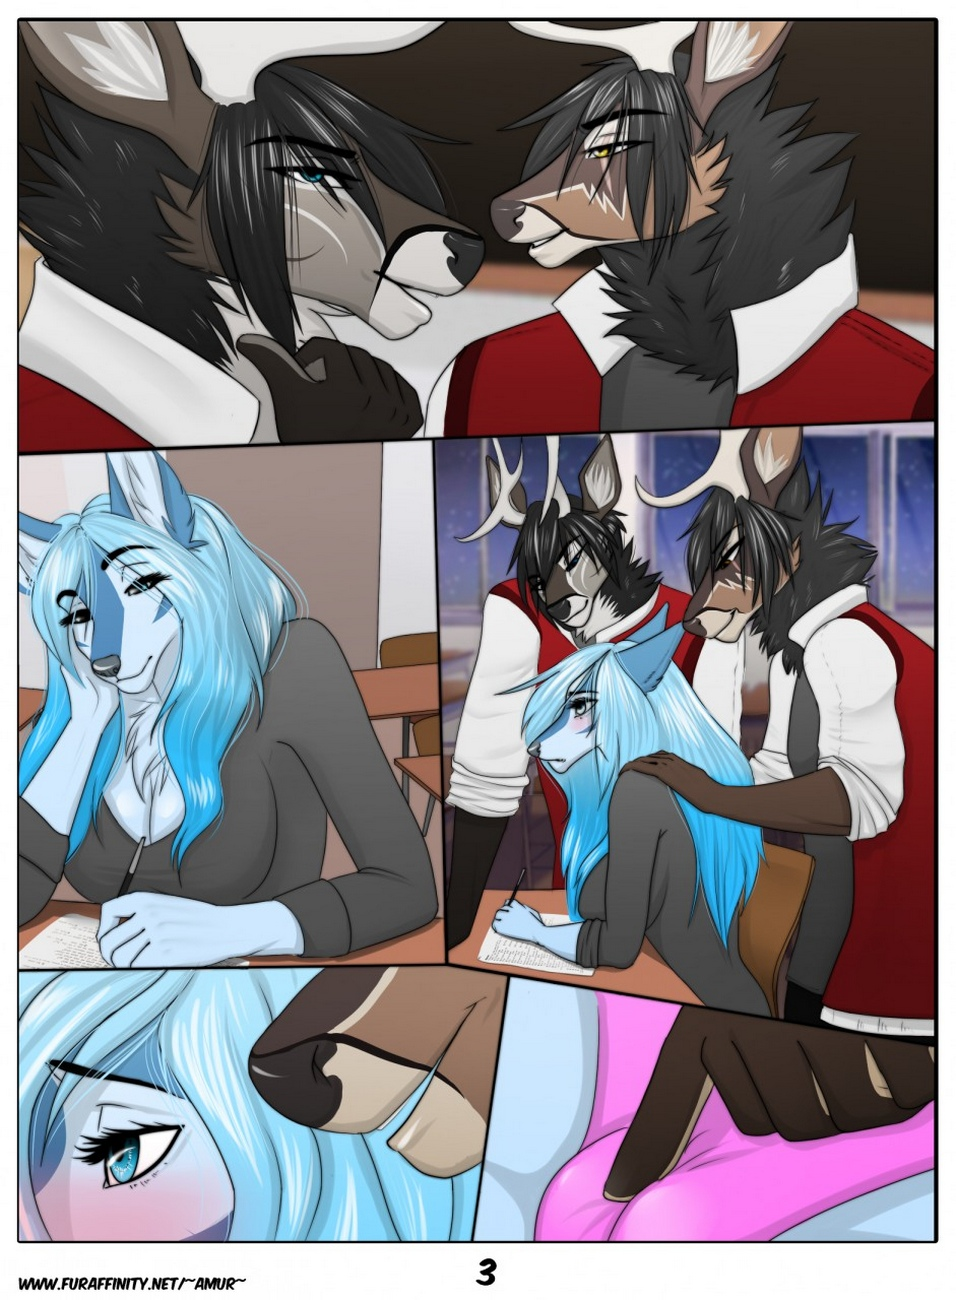 After-School-fur 4 free sex comic